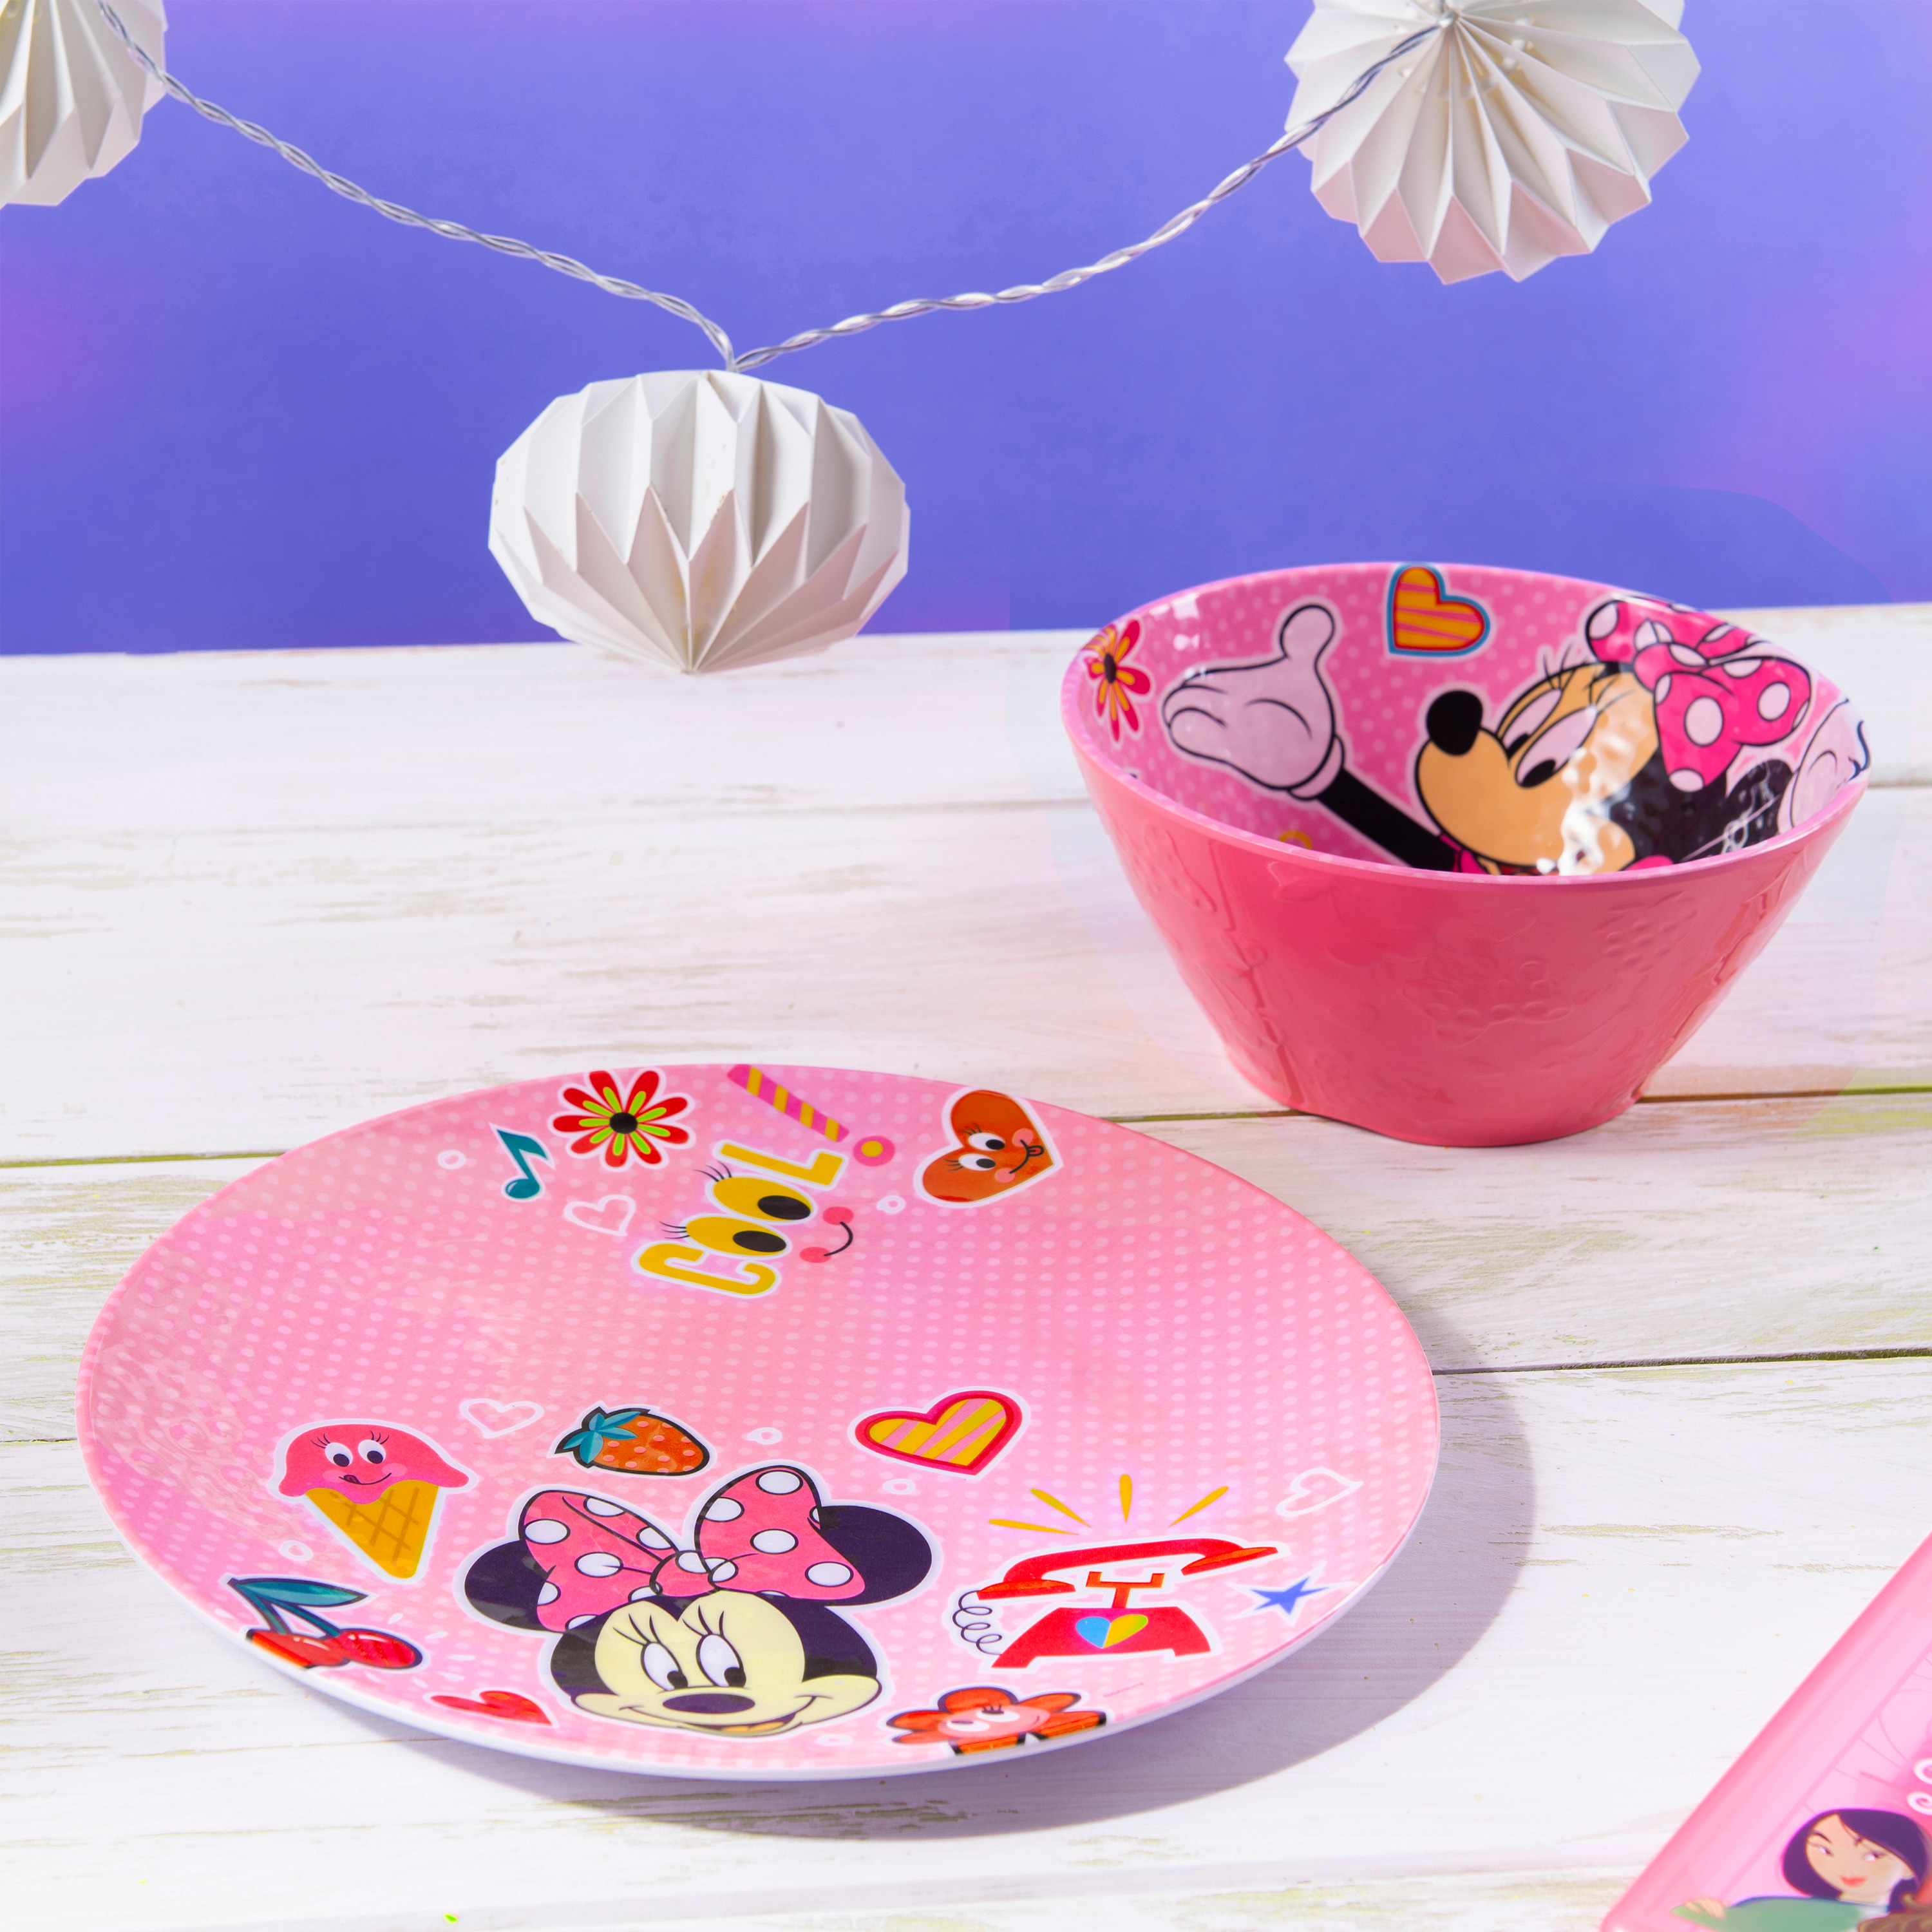 Disney Kids 9-inch Plate and 6-inch Bowl Set, Minnie Mouse, 2-piece set slideshow image 8